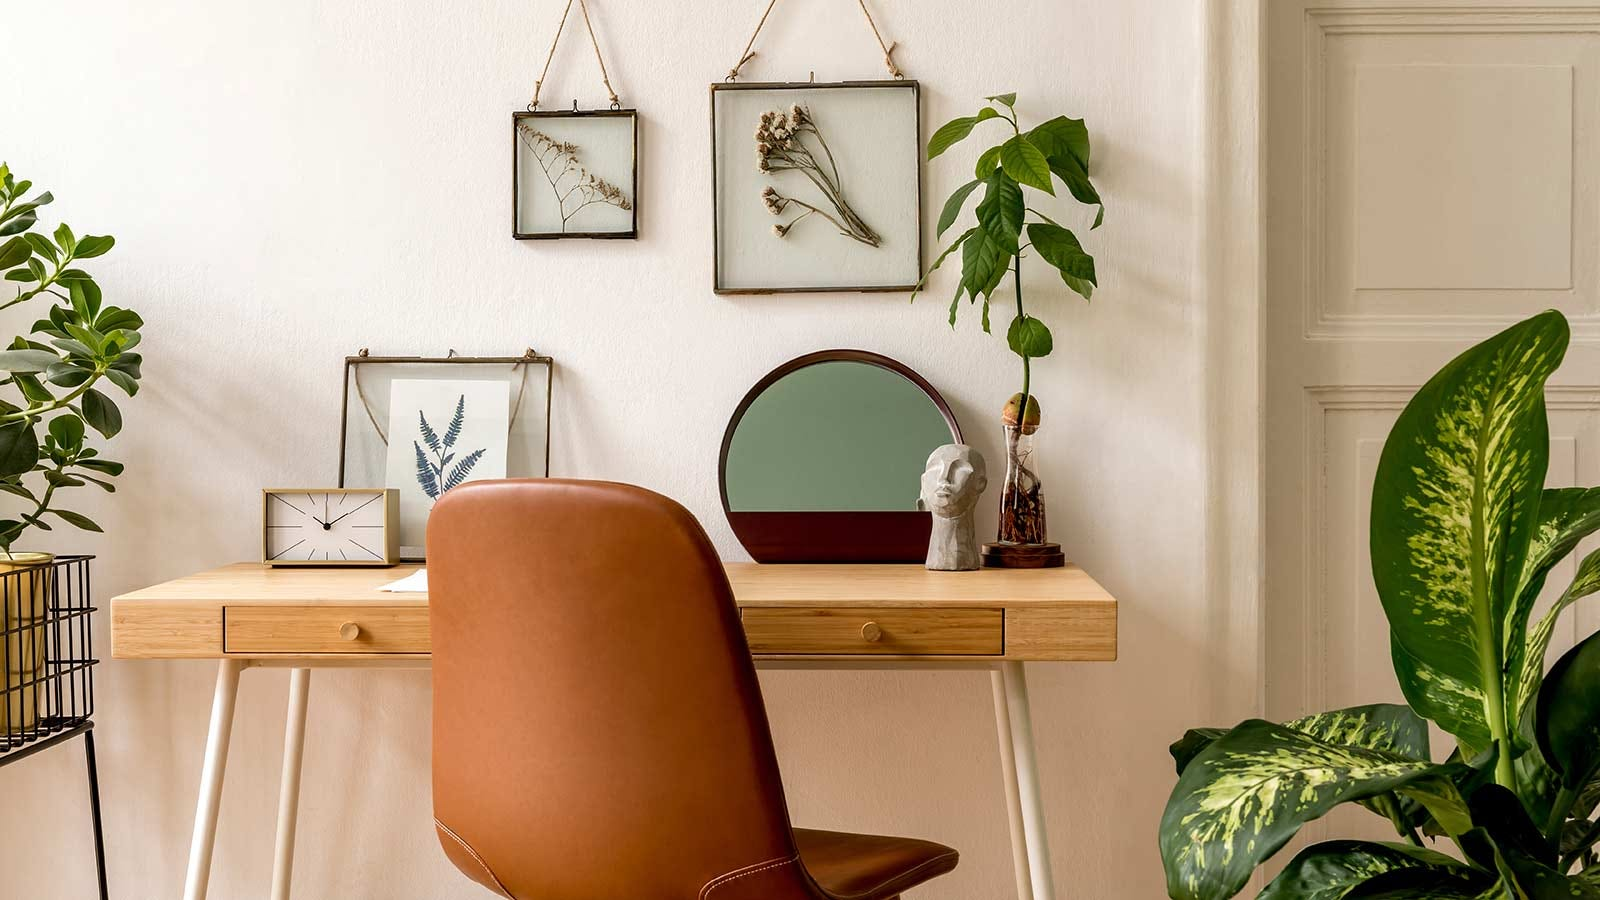 An airy home office with live plants and framed plant clippings.